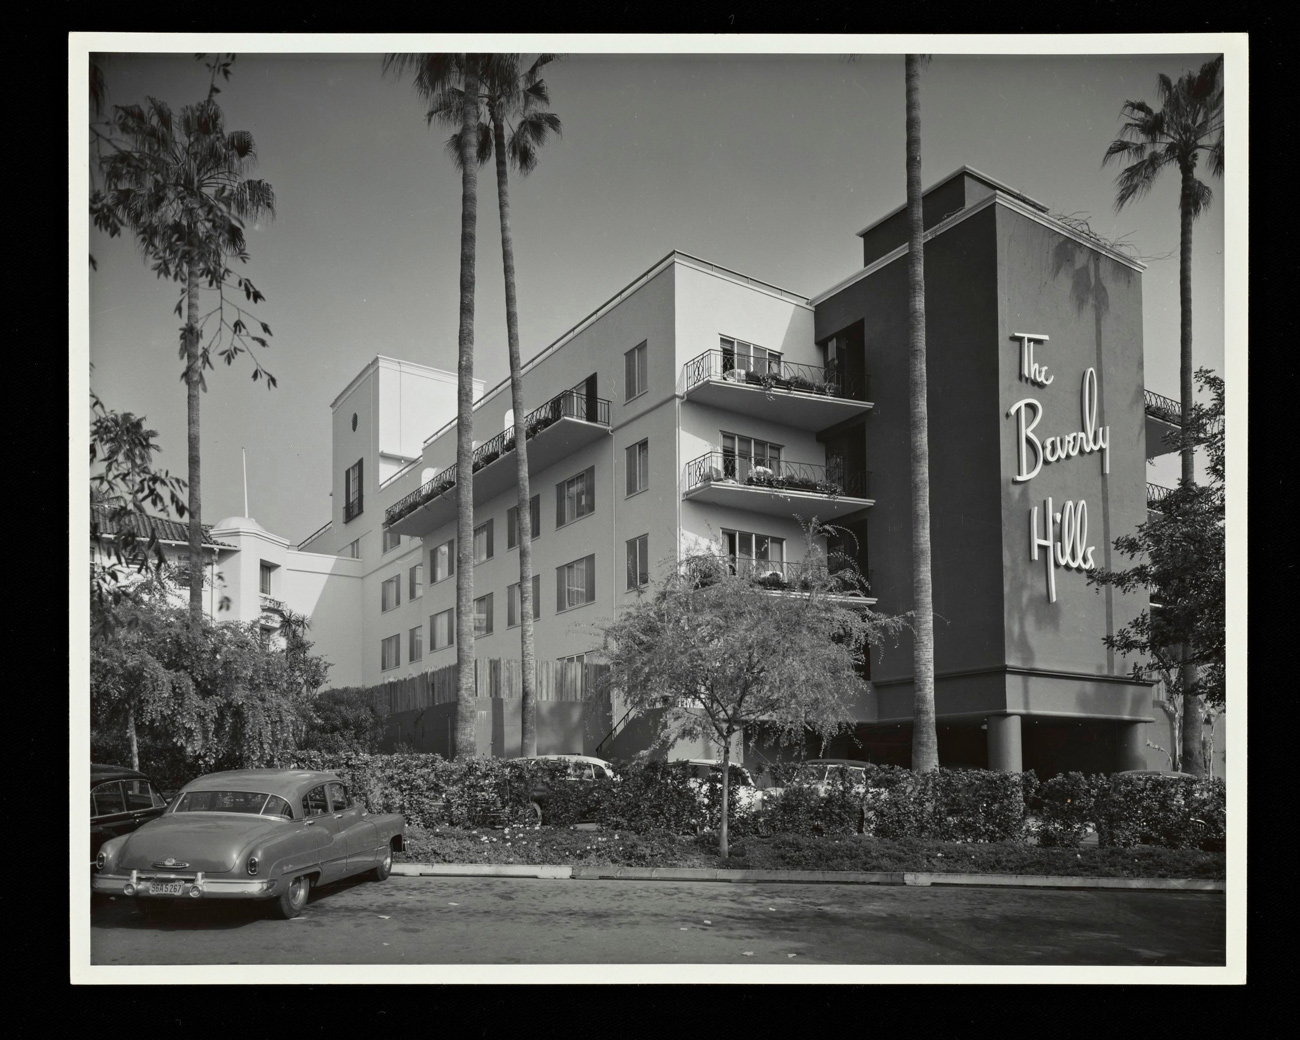 Black and white photo of 4-story building with parking lot in foreground. The words 'The Beverly Hills' appear on the front of the building